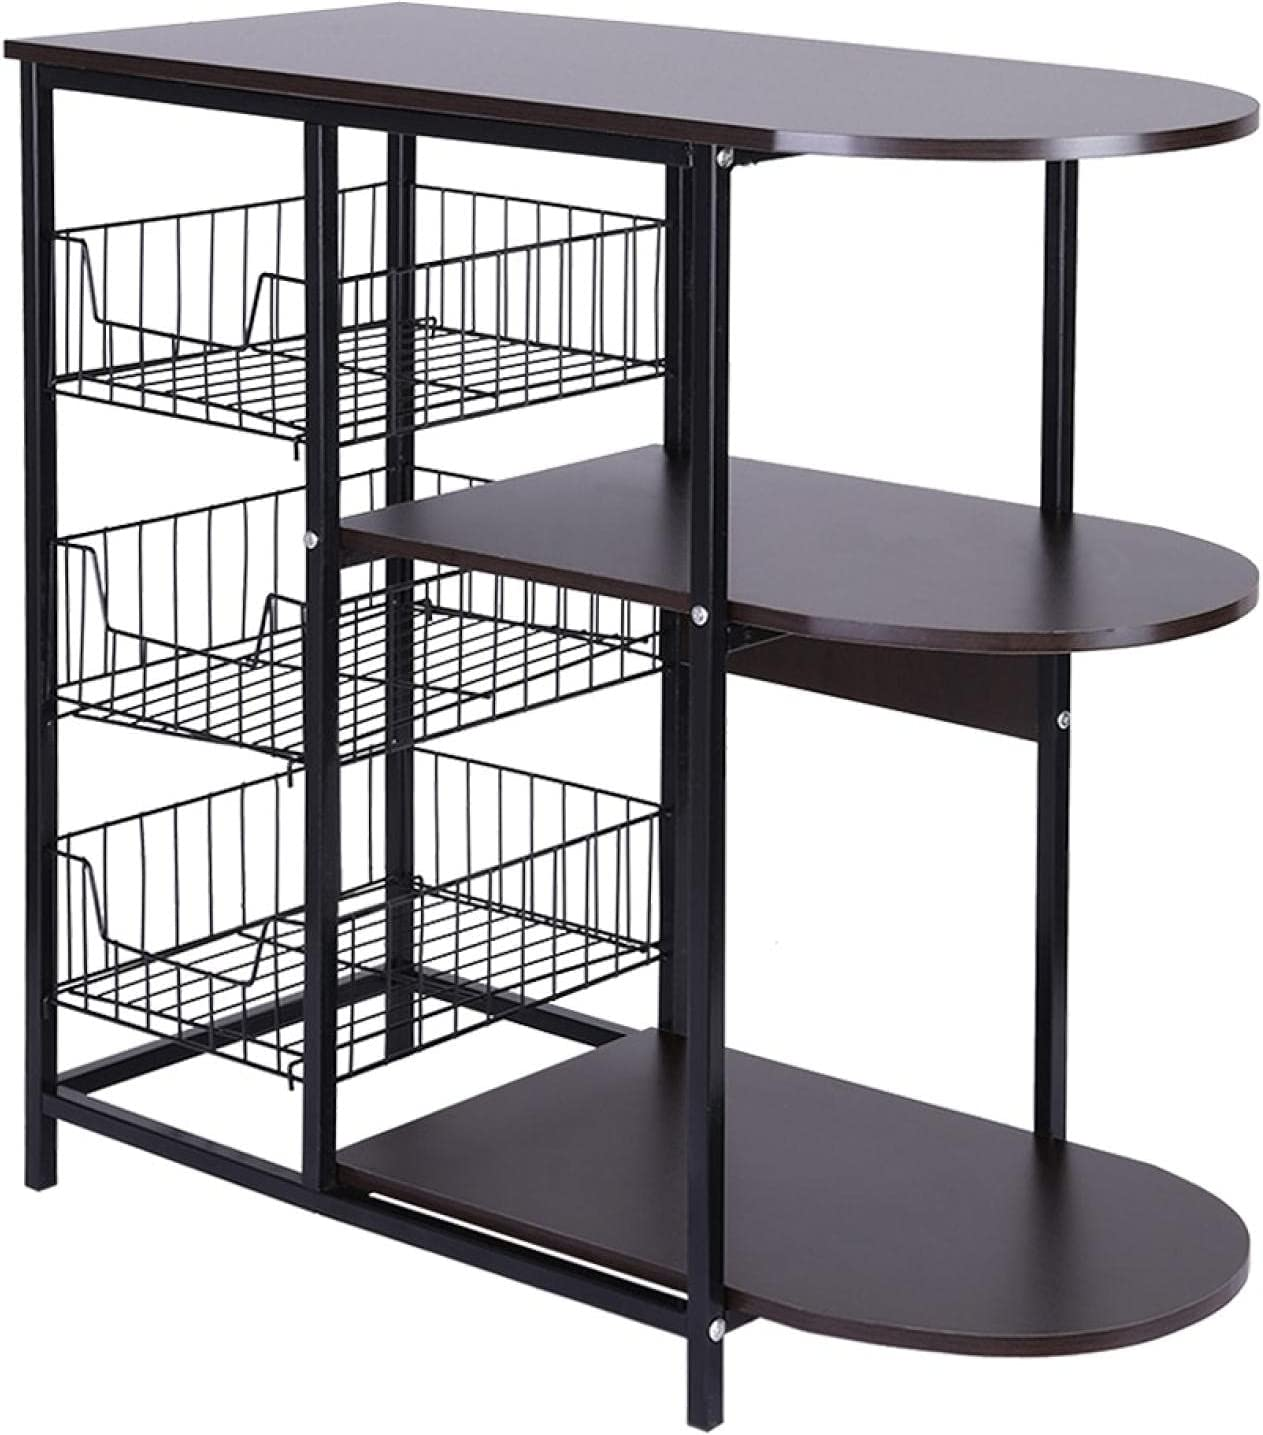 GMSWCG Kitchen Baker's Rack Coffee Online limited product with Manufacturer regenerated product Wire Basket Bar Mi